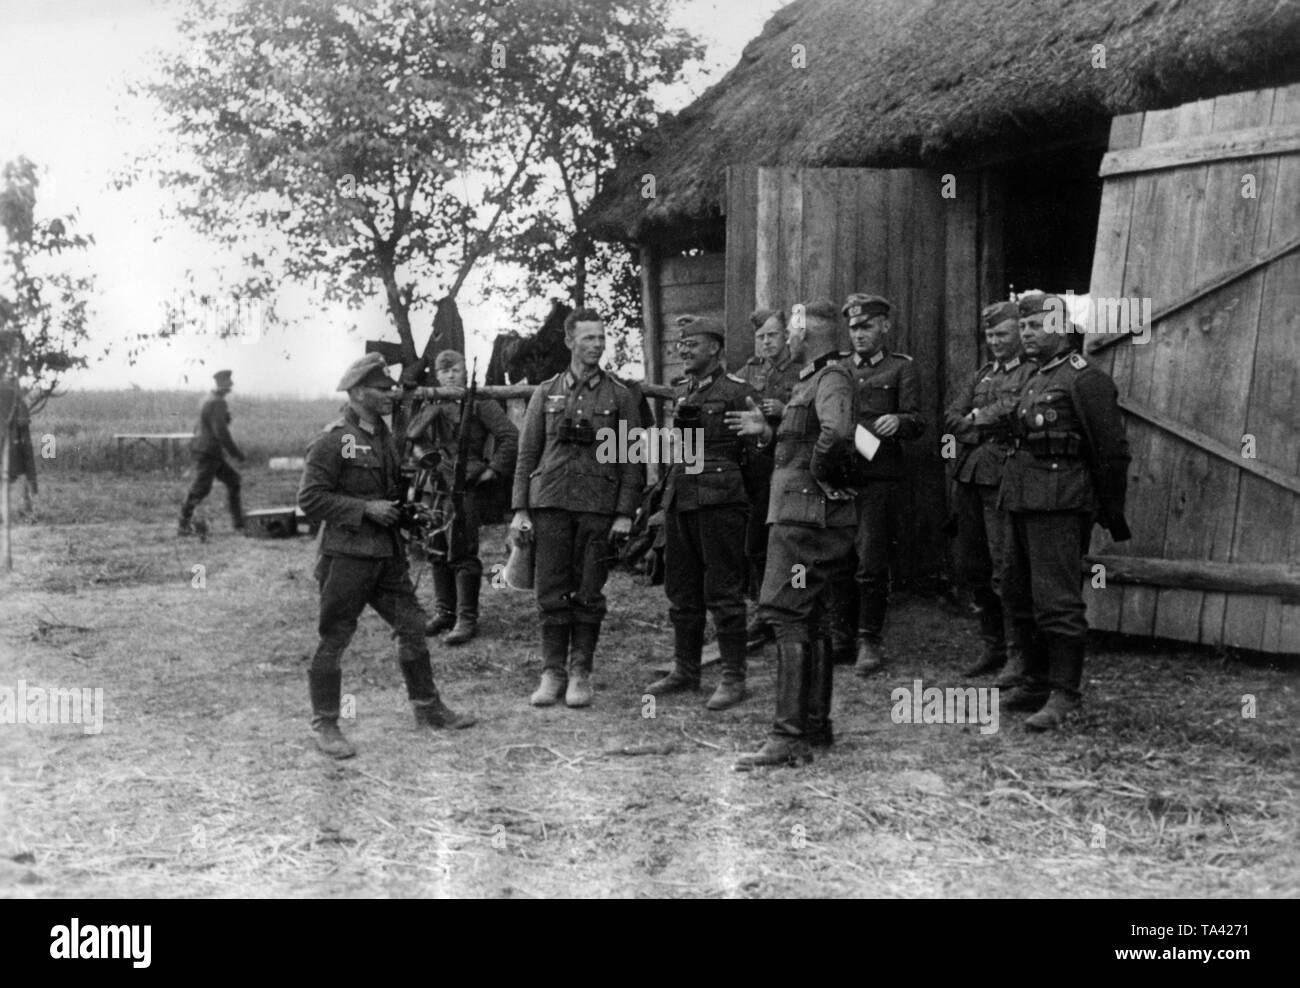 A battalion of the Wehrmacht moved its command post into a barn near the River Bug. The Bug was the border river between the German Reich and the Soviet Union in 1941 and was crossed in the first days of the Operation Barbarossa. Photo: war correspondent Feitl. Stock Photo